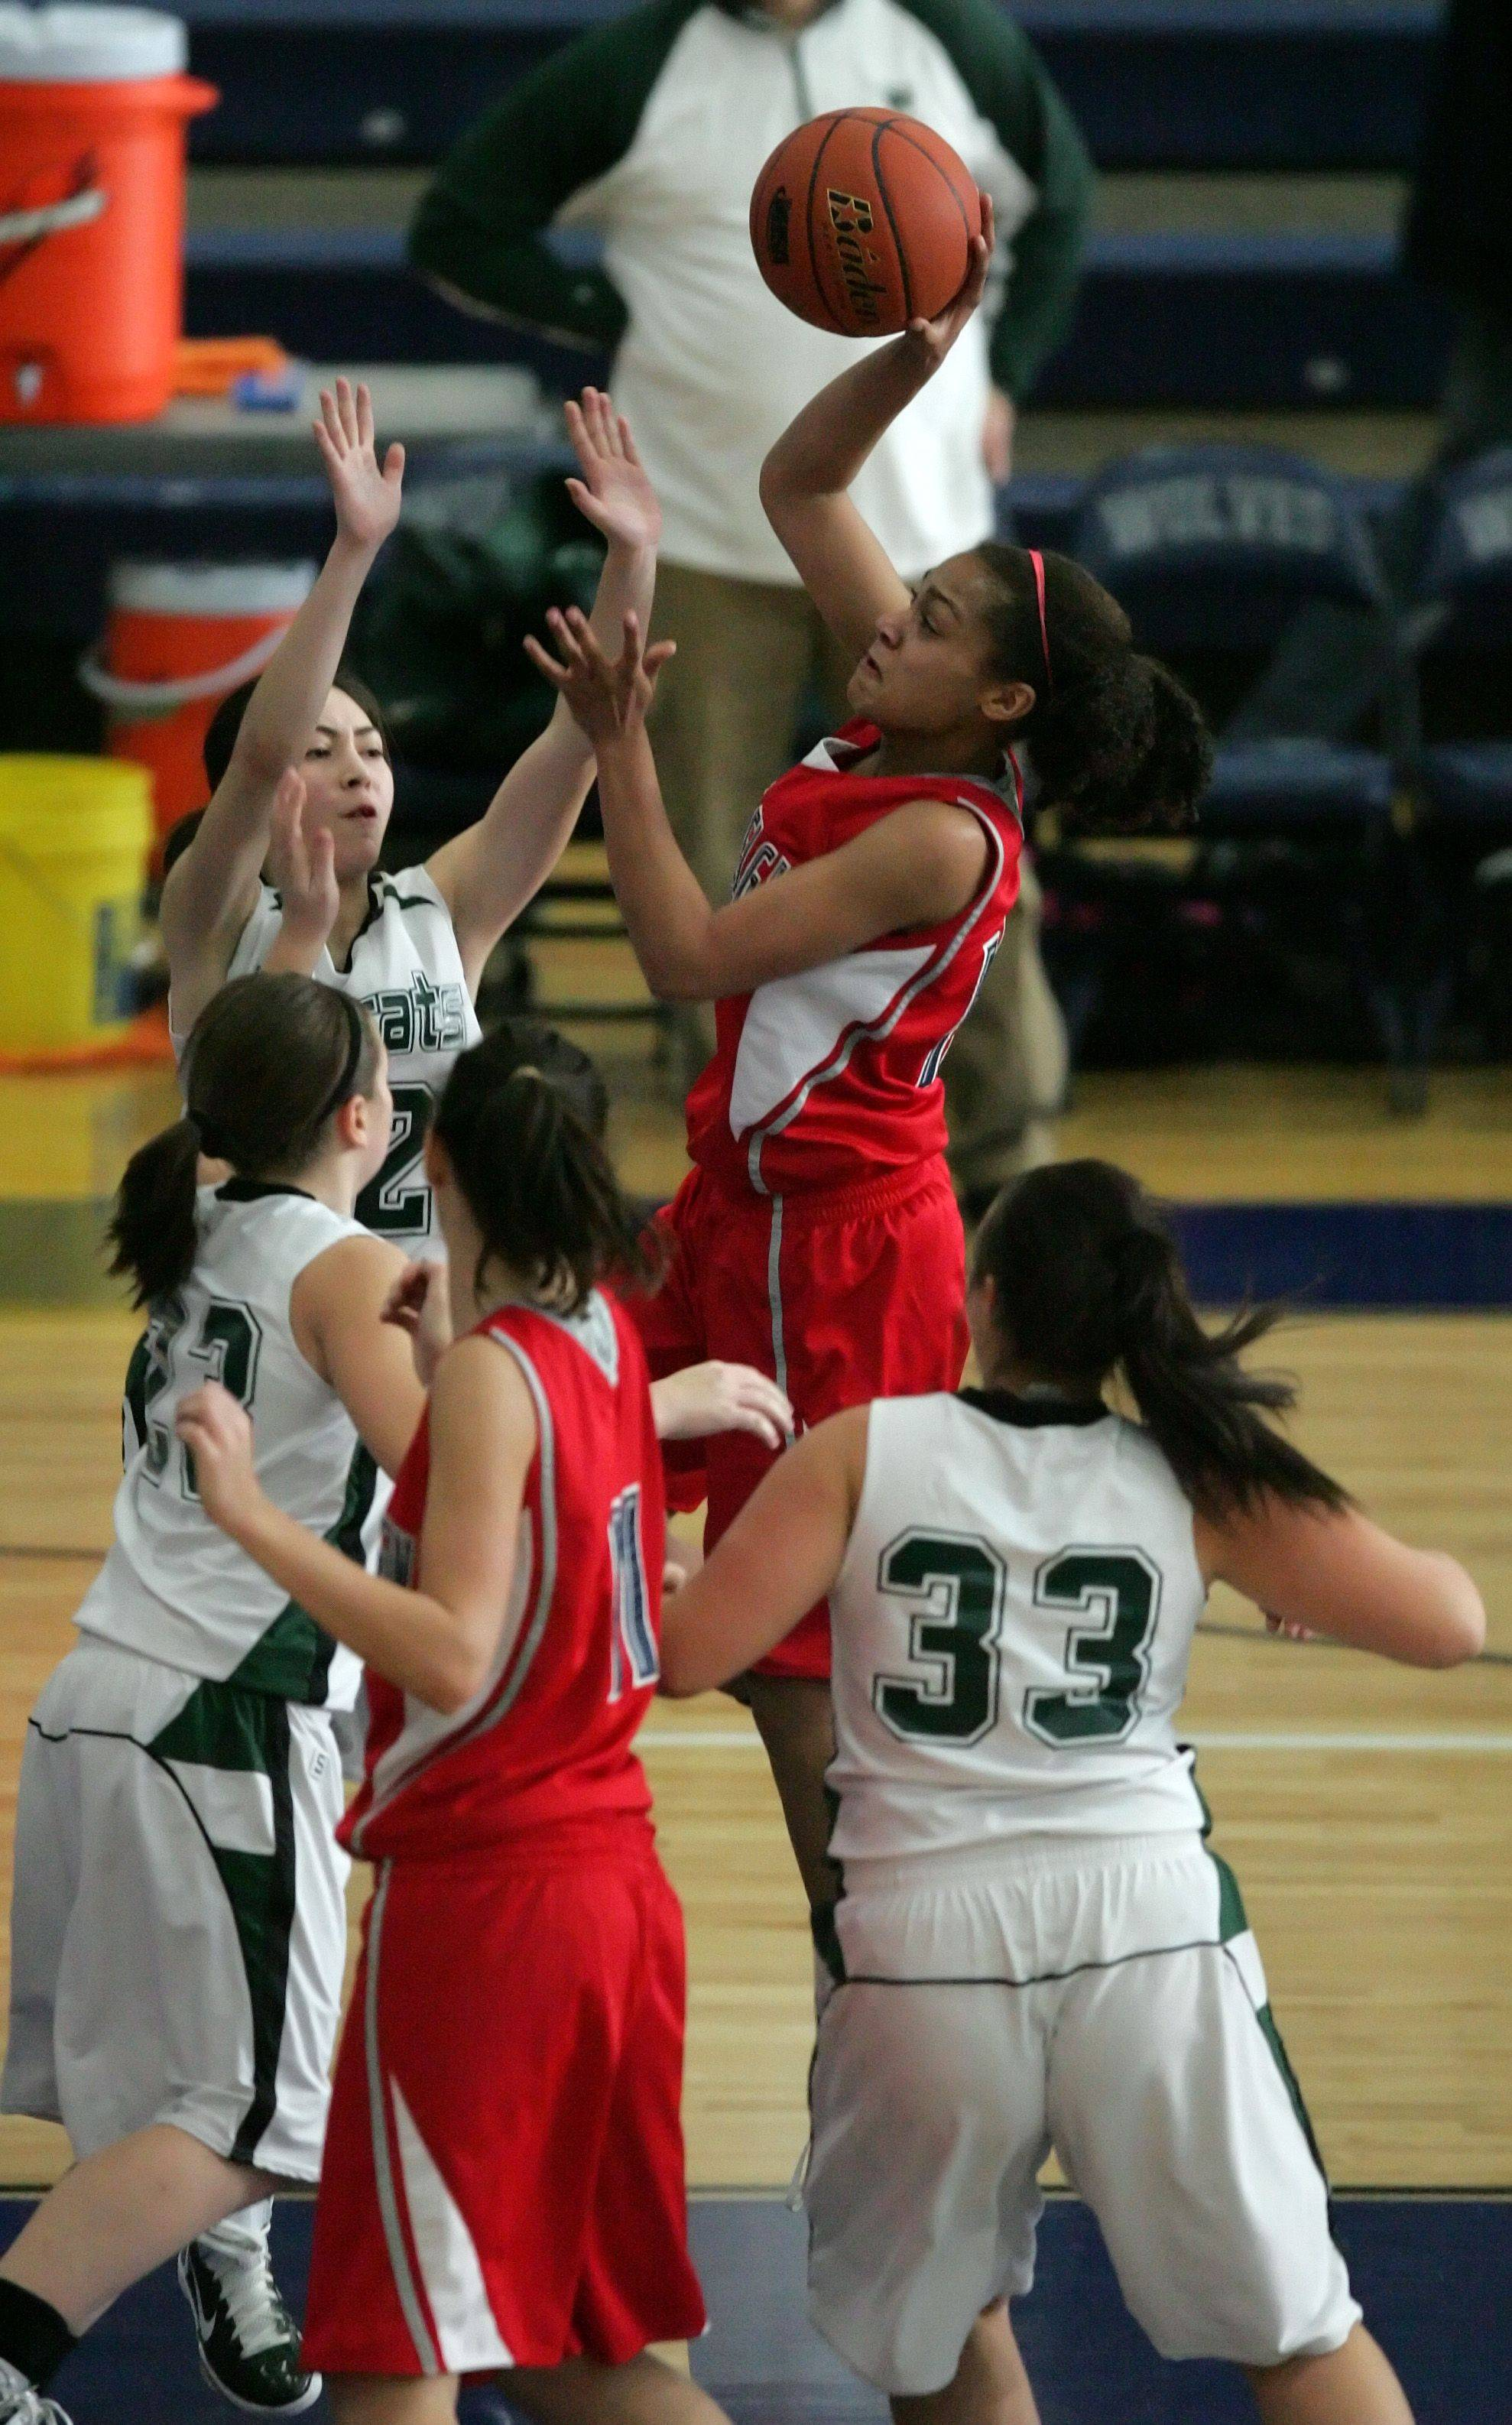 South Elgin guard, Becca Smith, 15, goes to the hoop during South Elgin vs Plainfield Central girls basketball at the Wolves Winter Classic Basketball Tournament Tuesday, December 28, 2010 in Oswego.